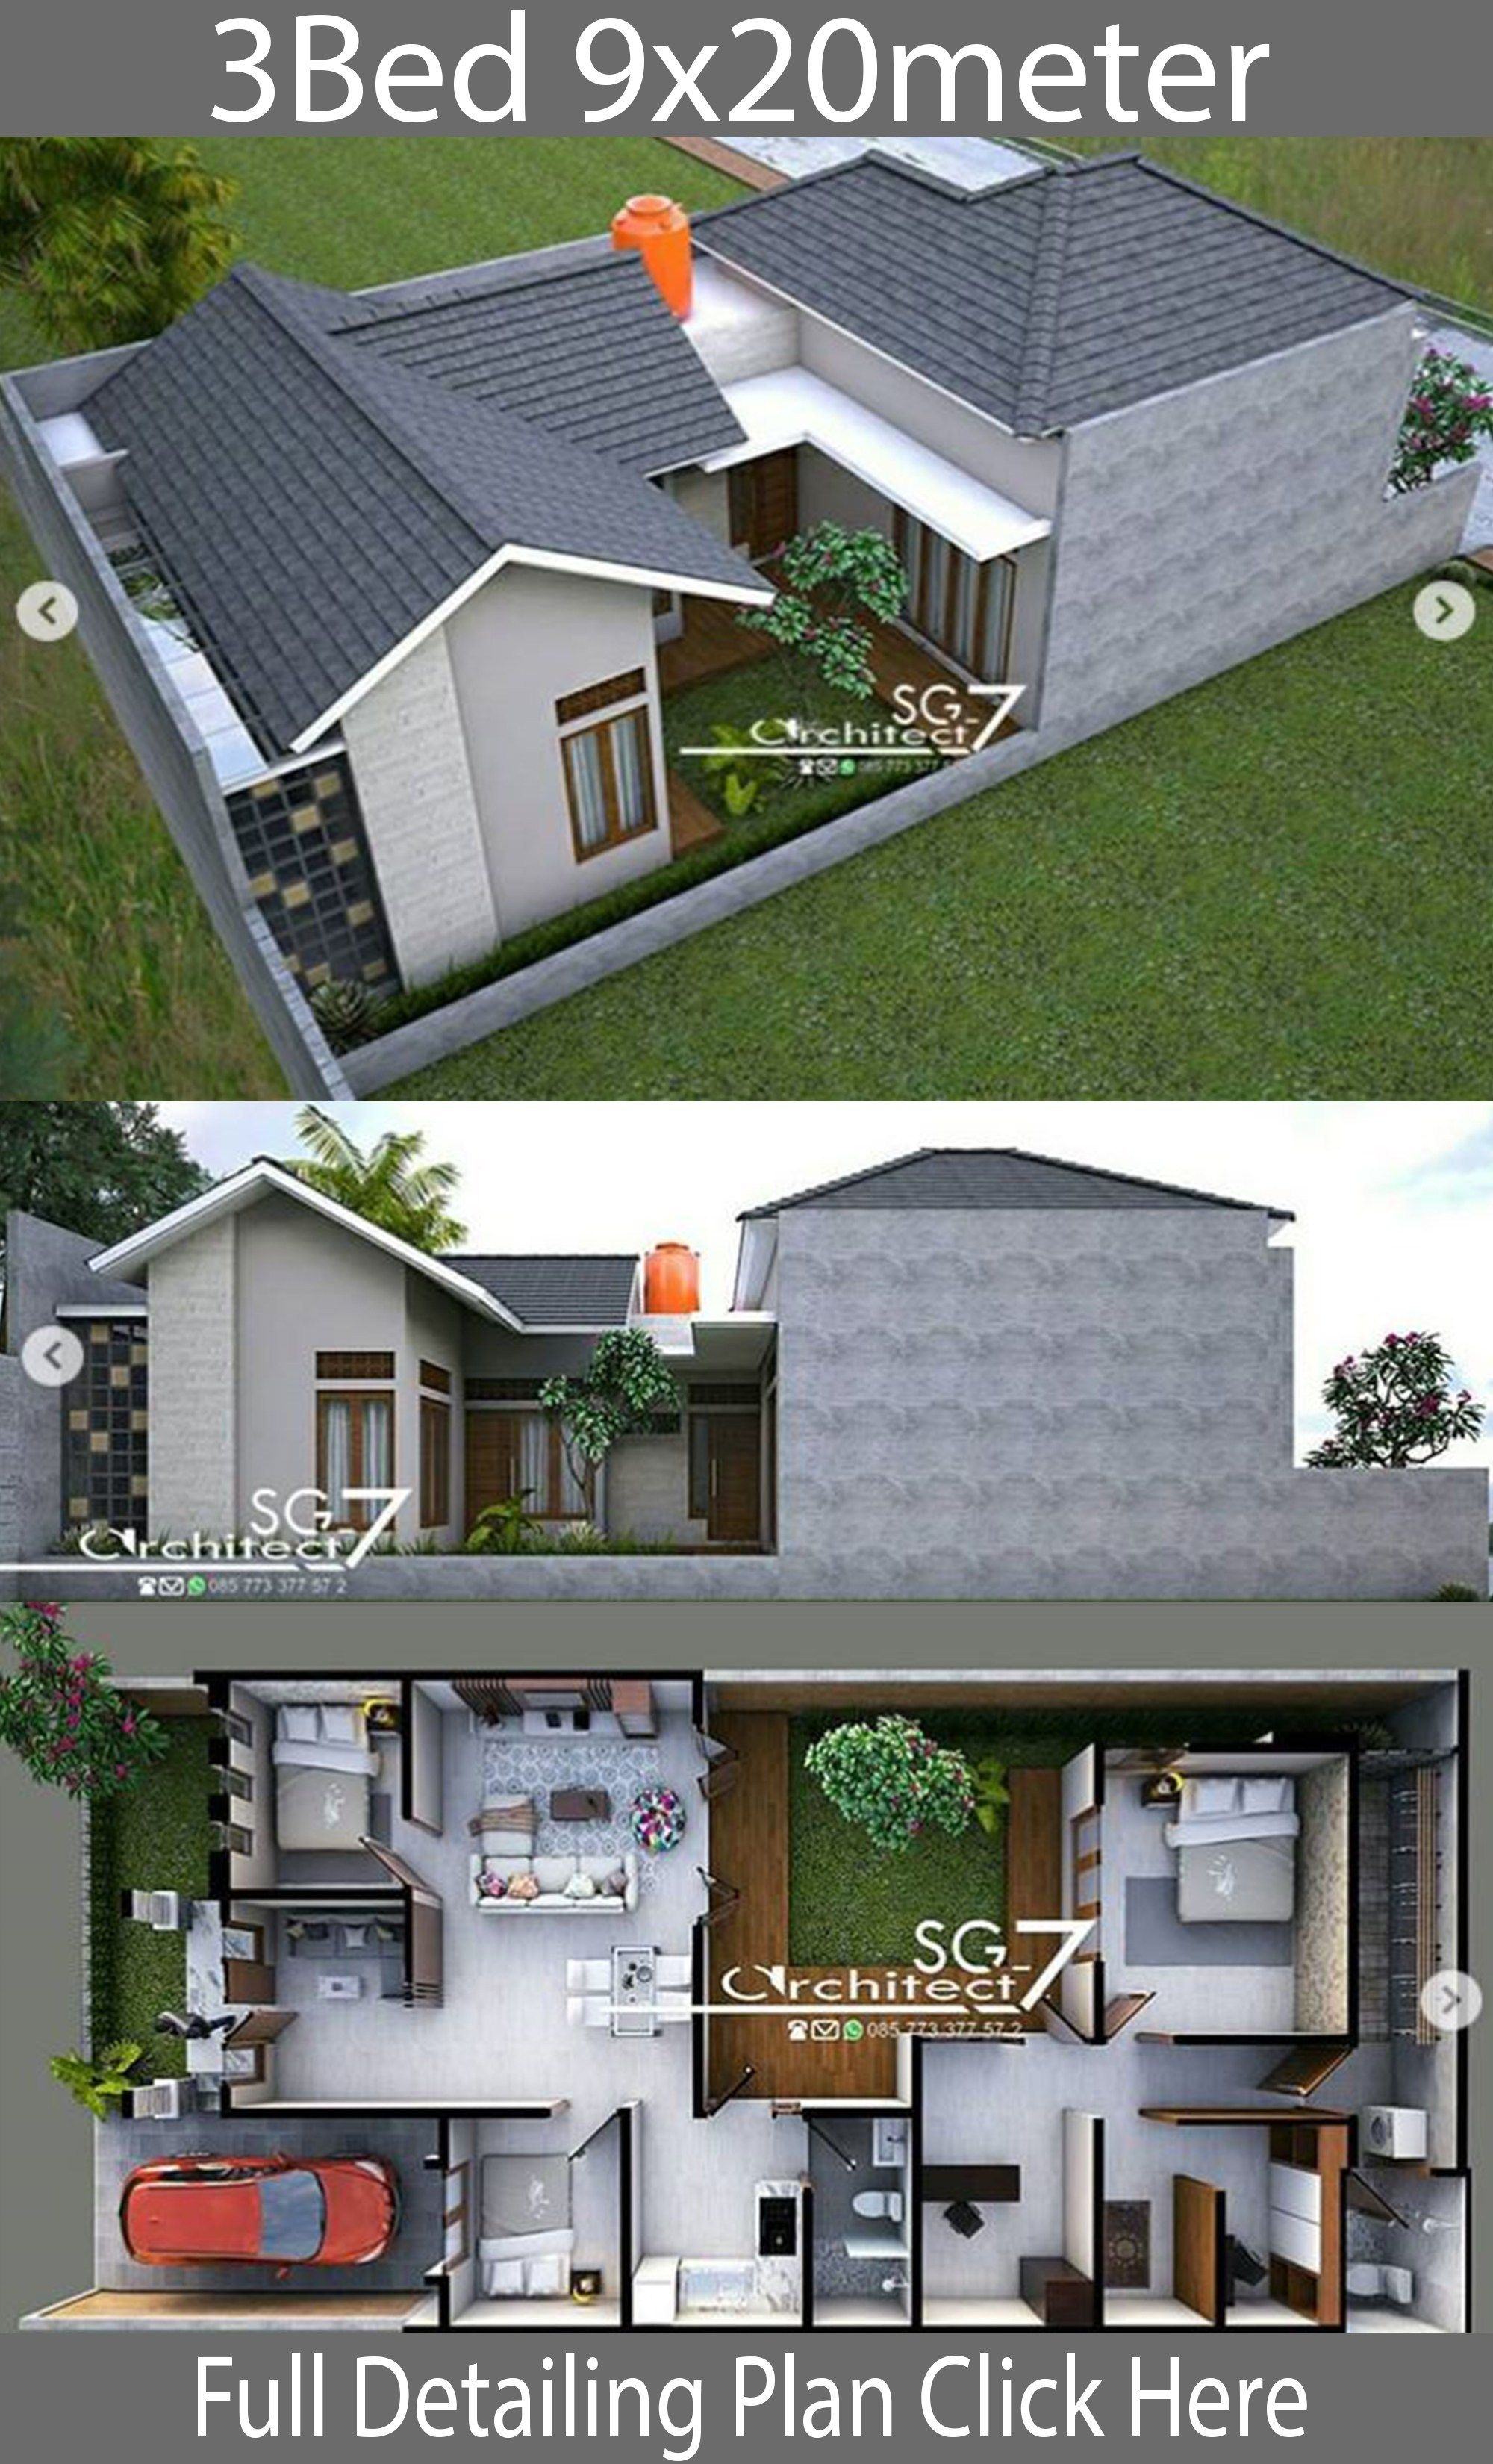 3 Bedrooms Home Design Plan 9x20m Home Design With Plan Home Design Plan Modern House Plans House Design